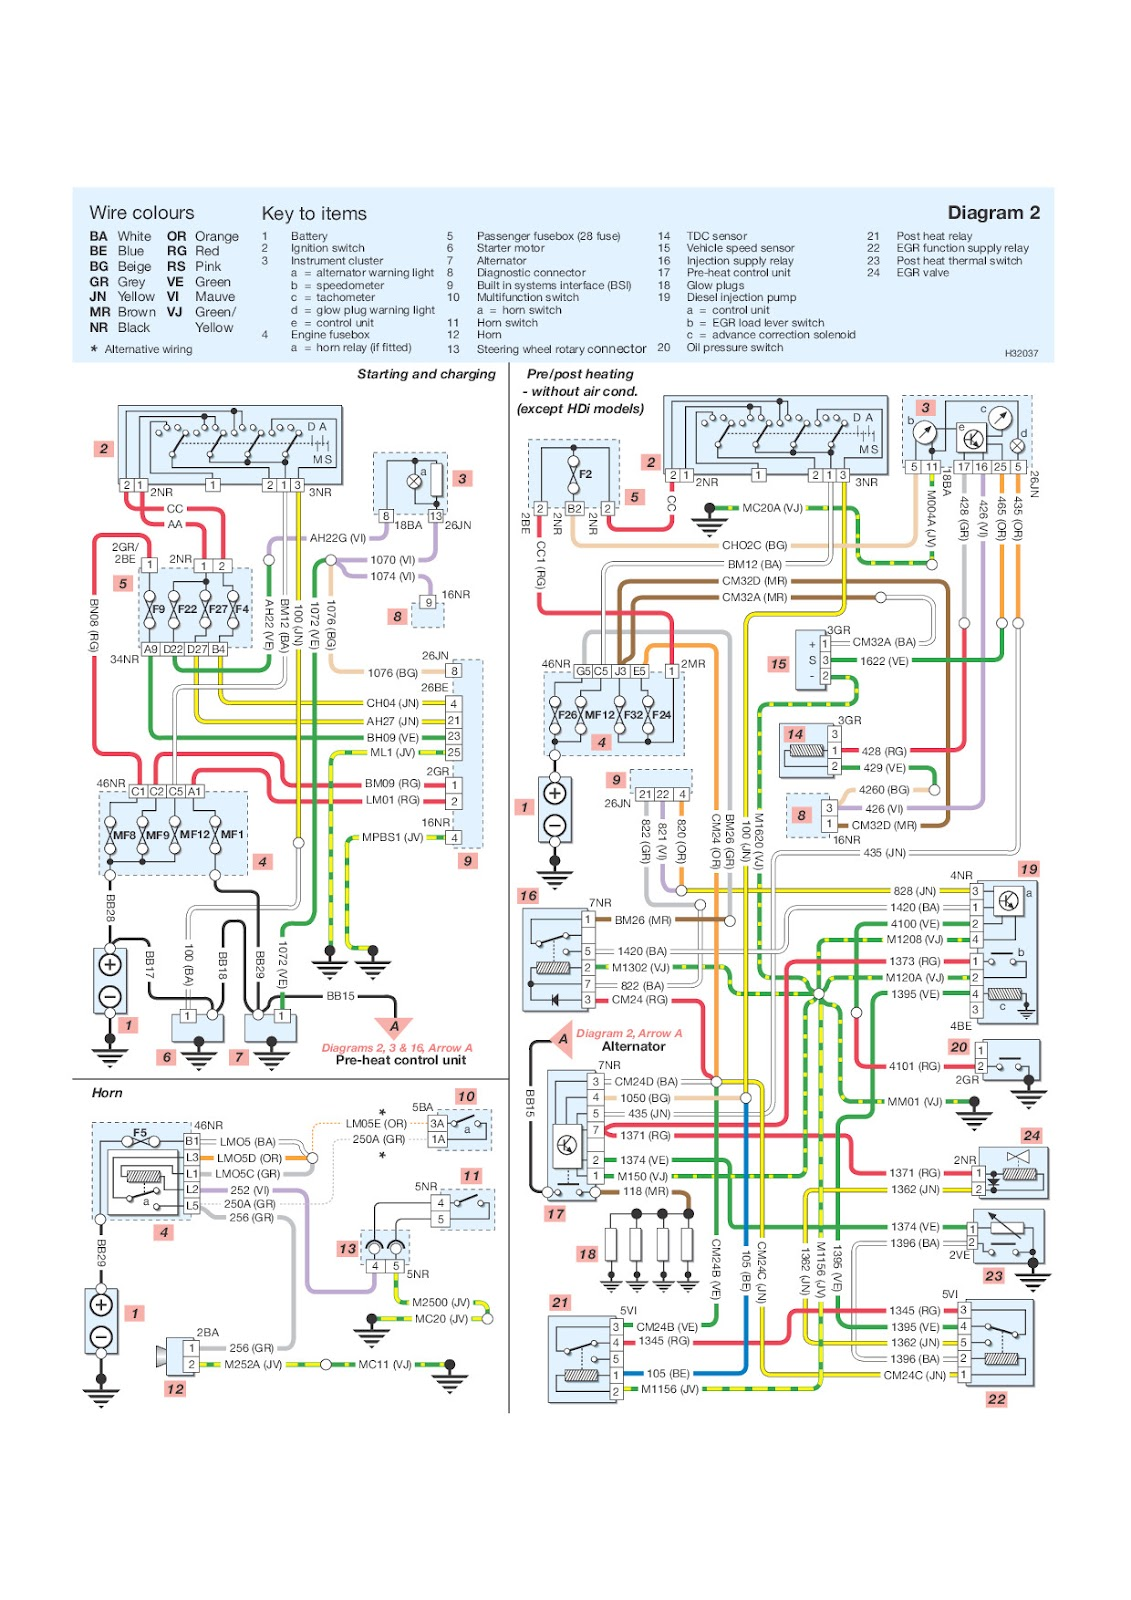 peugeot 206 wiring diagram cooling fan your wiring diagrams source: peugeot 206 starting ...